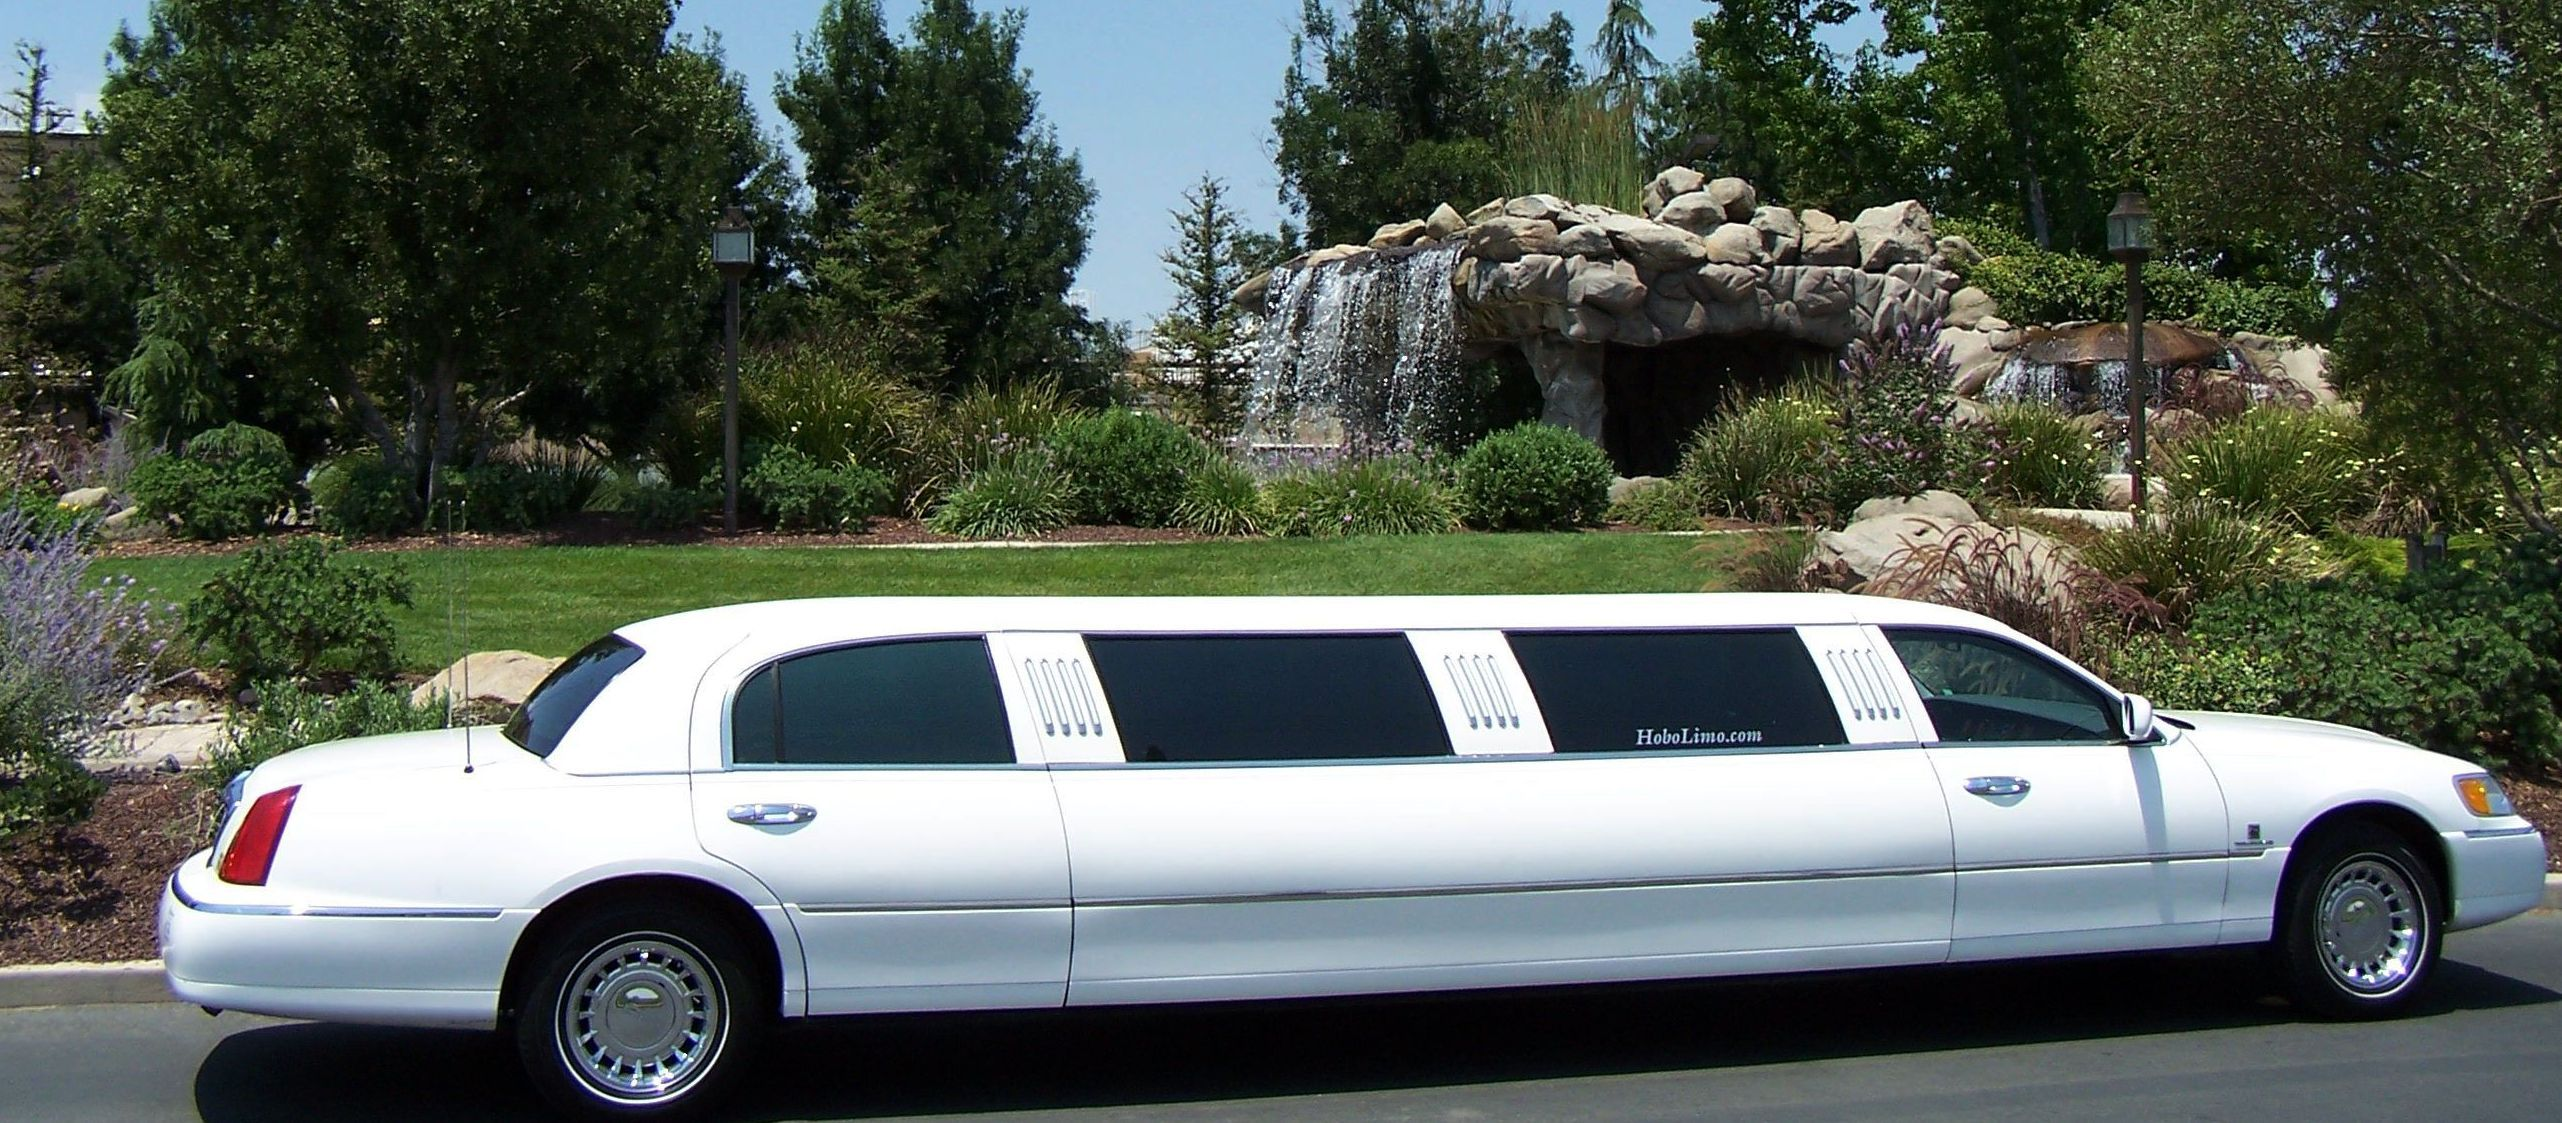 wedtipwed have your limo company show up at least 15 minutes early to pick